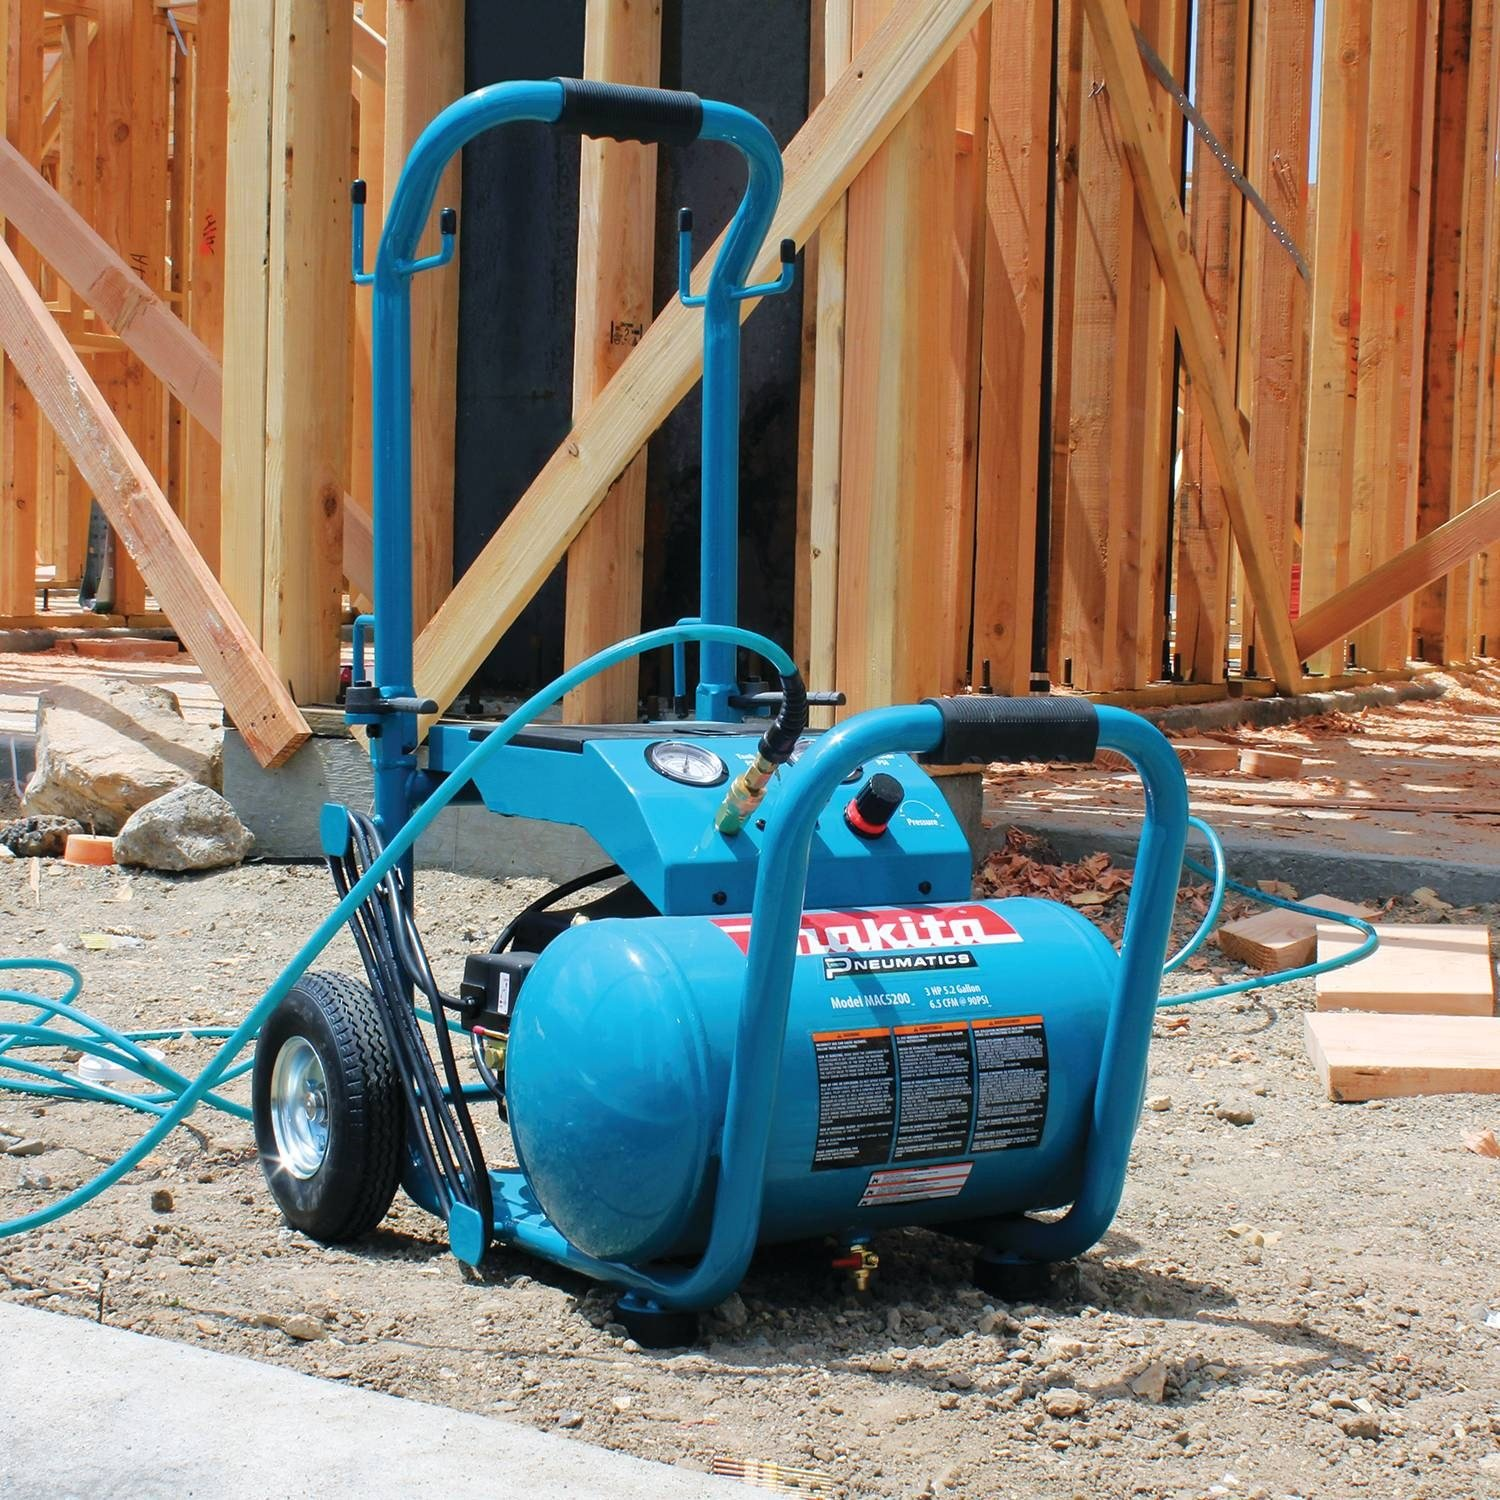 Makita Portable Air Compressor Reviews